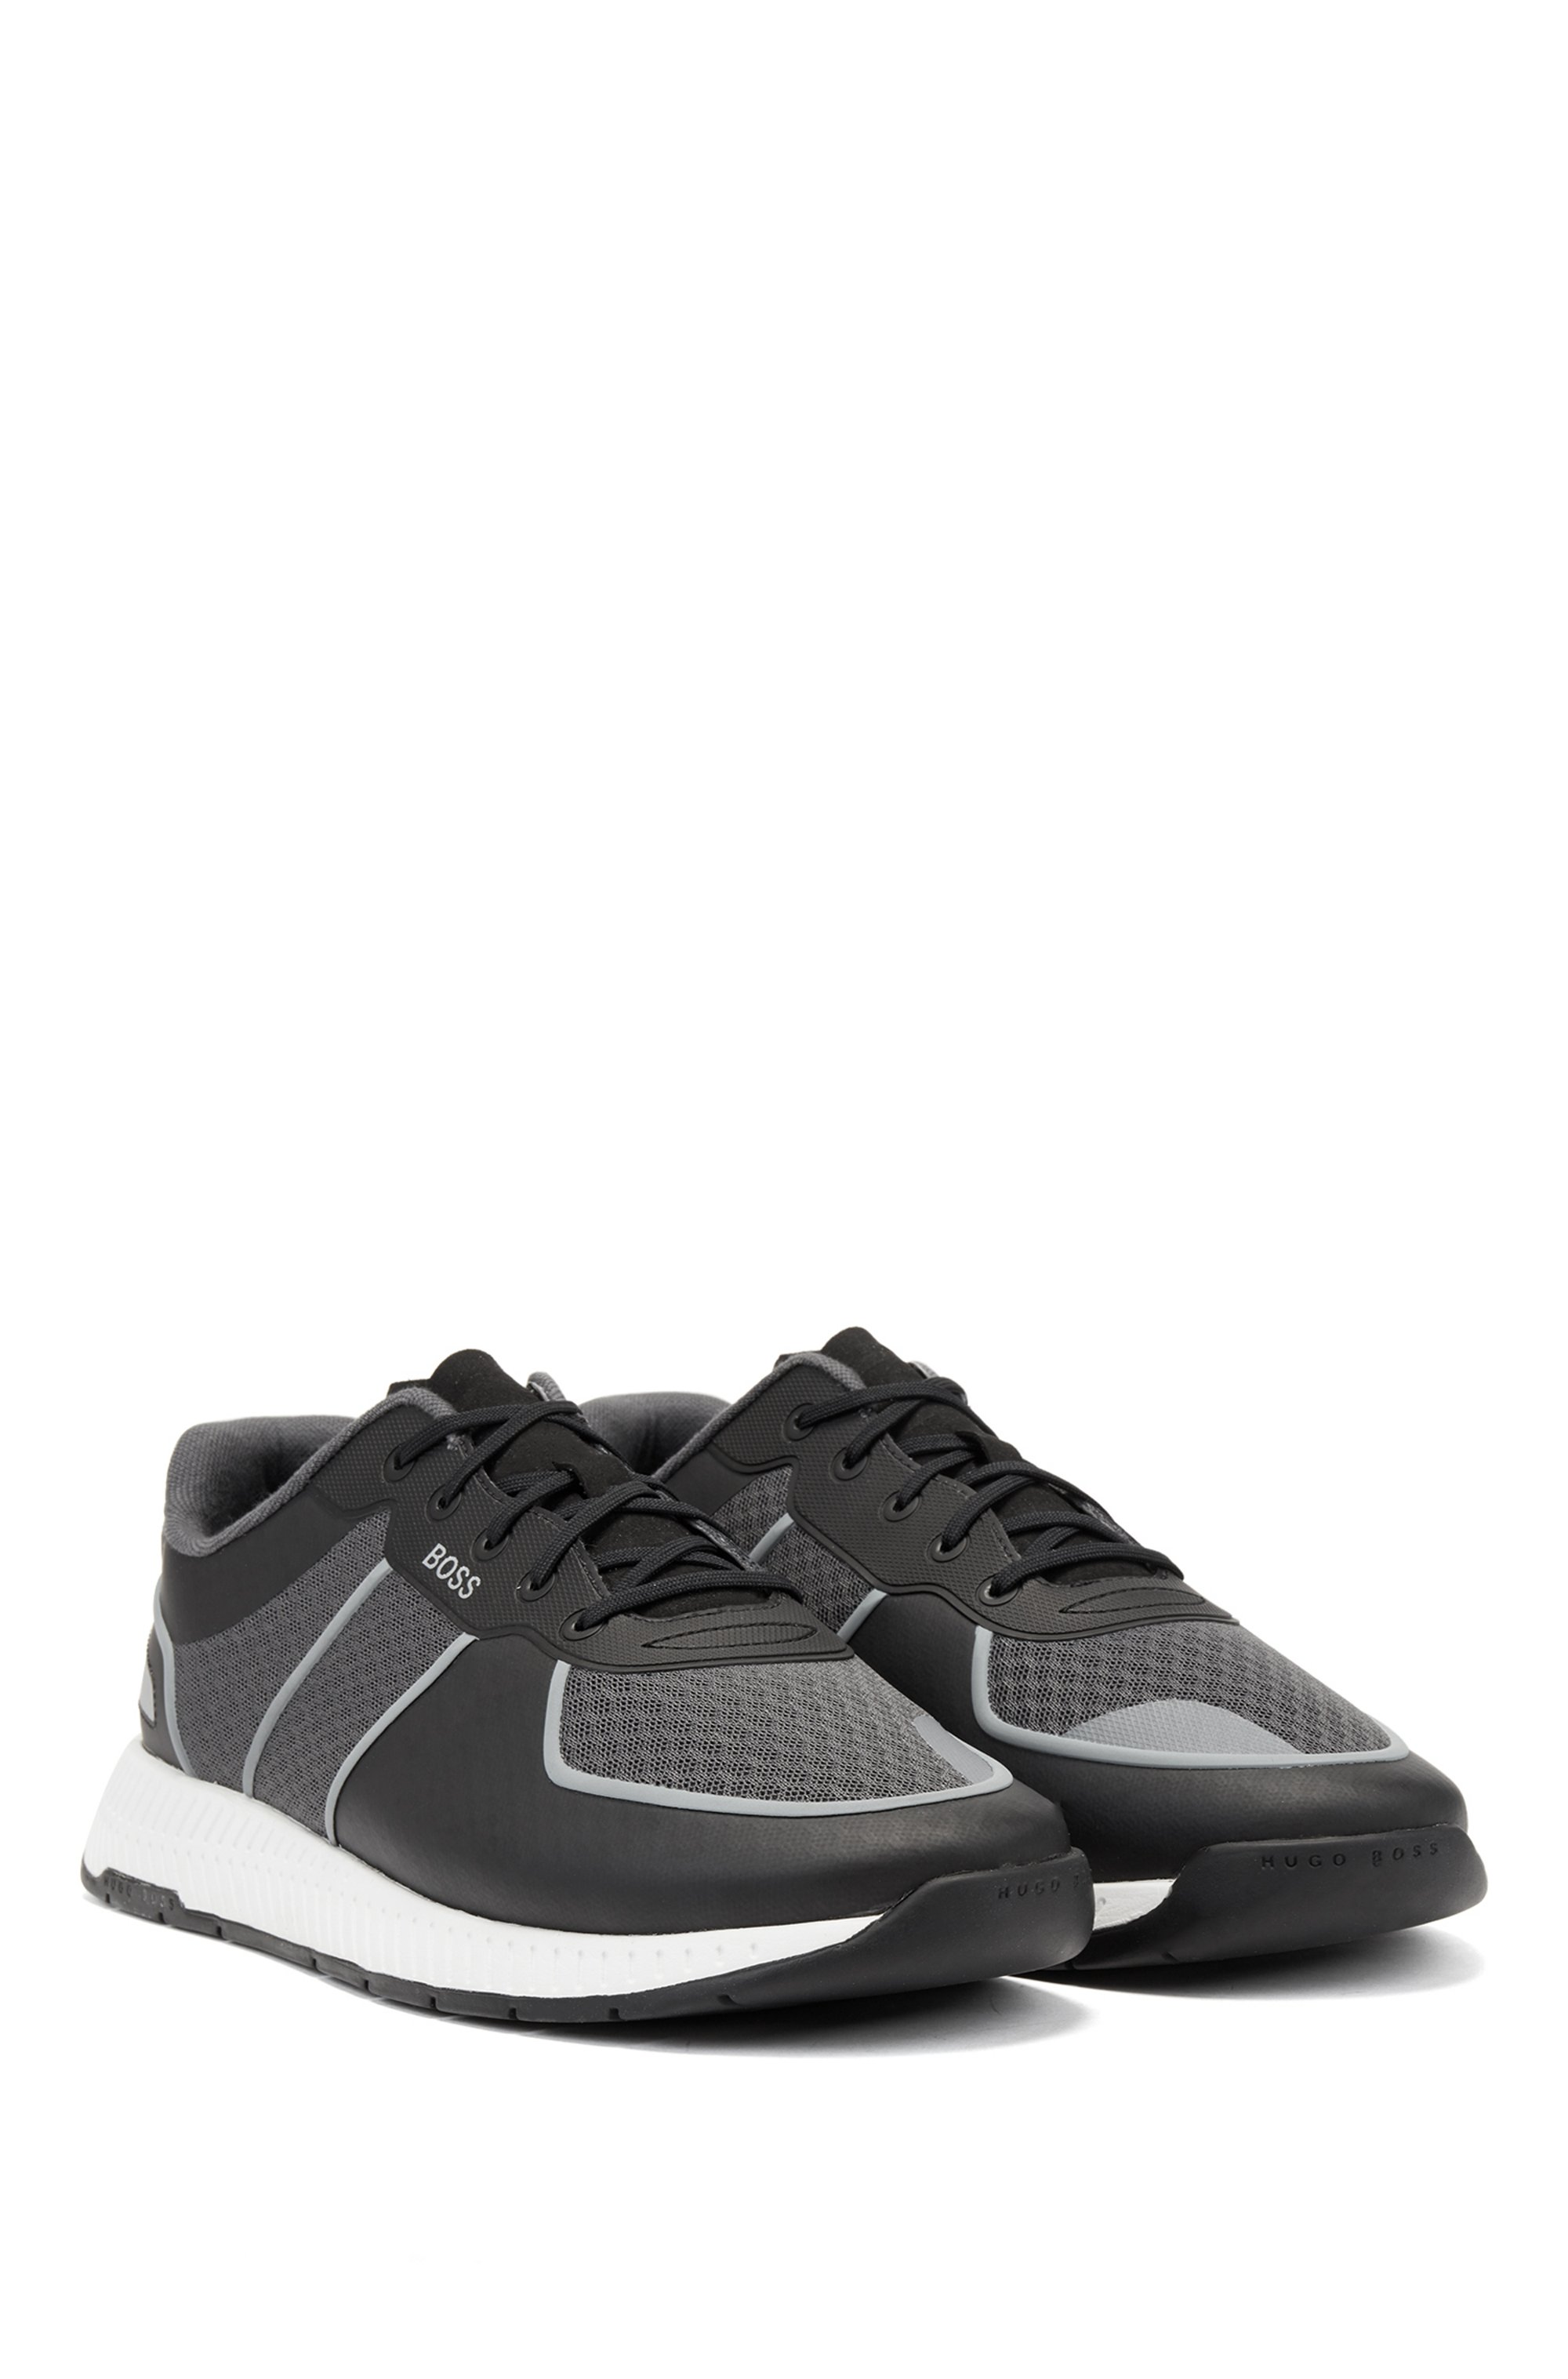 Hybrid trainers with reflective accents and bamboo-cotton insole